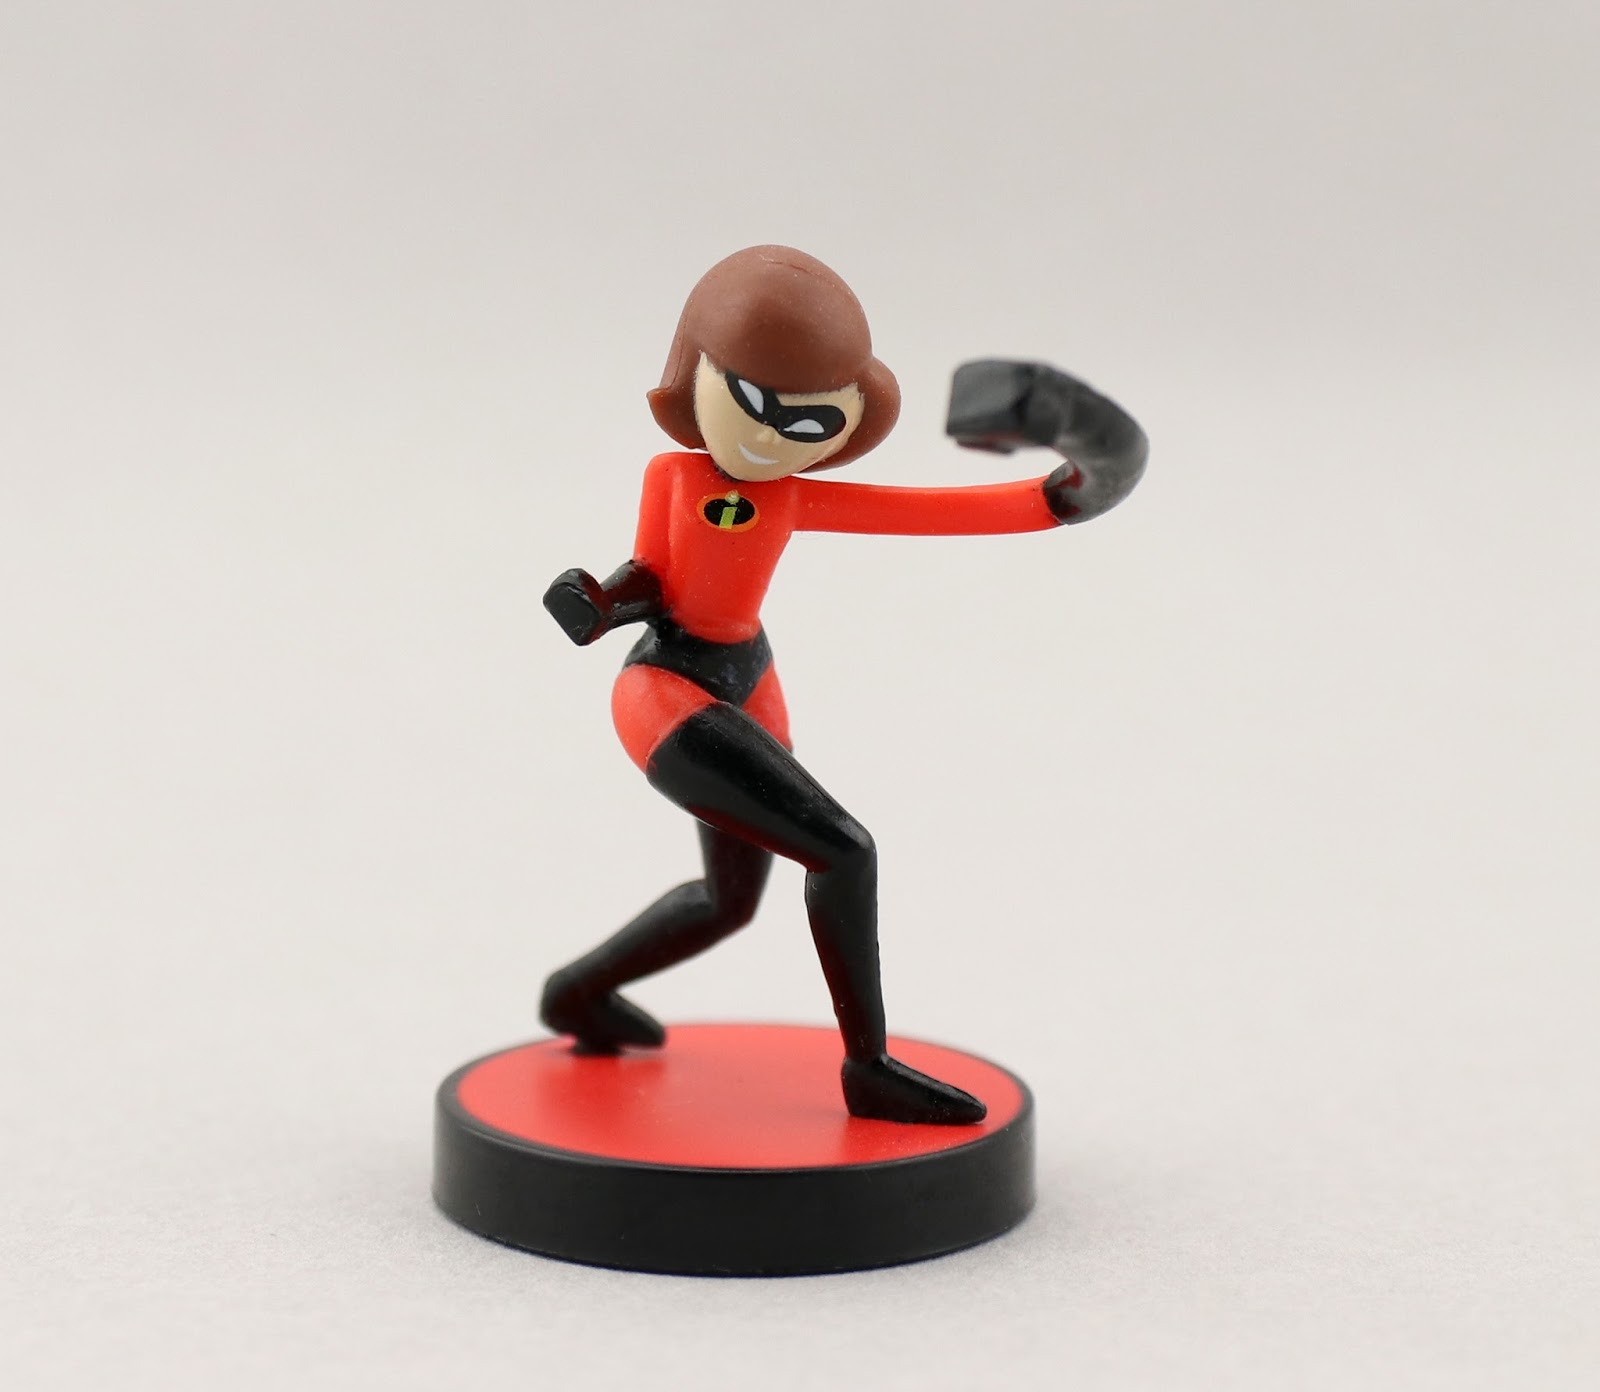 disney pixar incredibles 2 blind box figures series 1